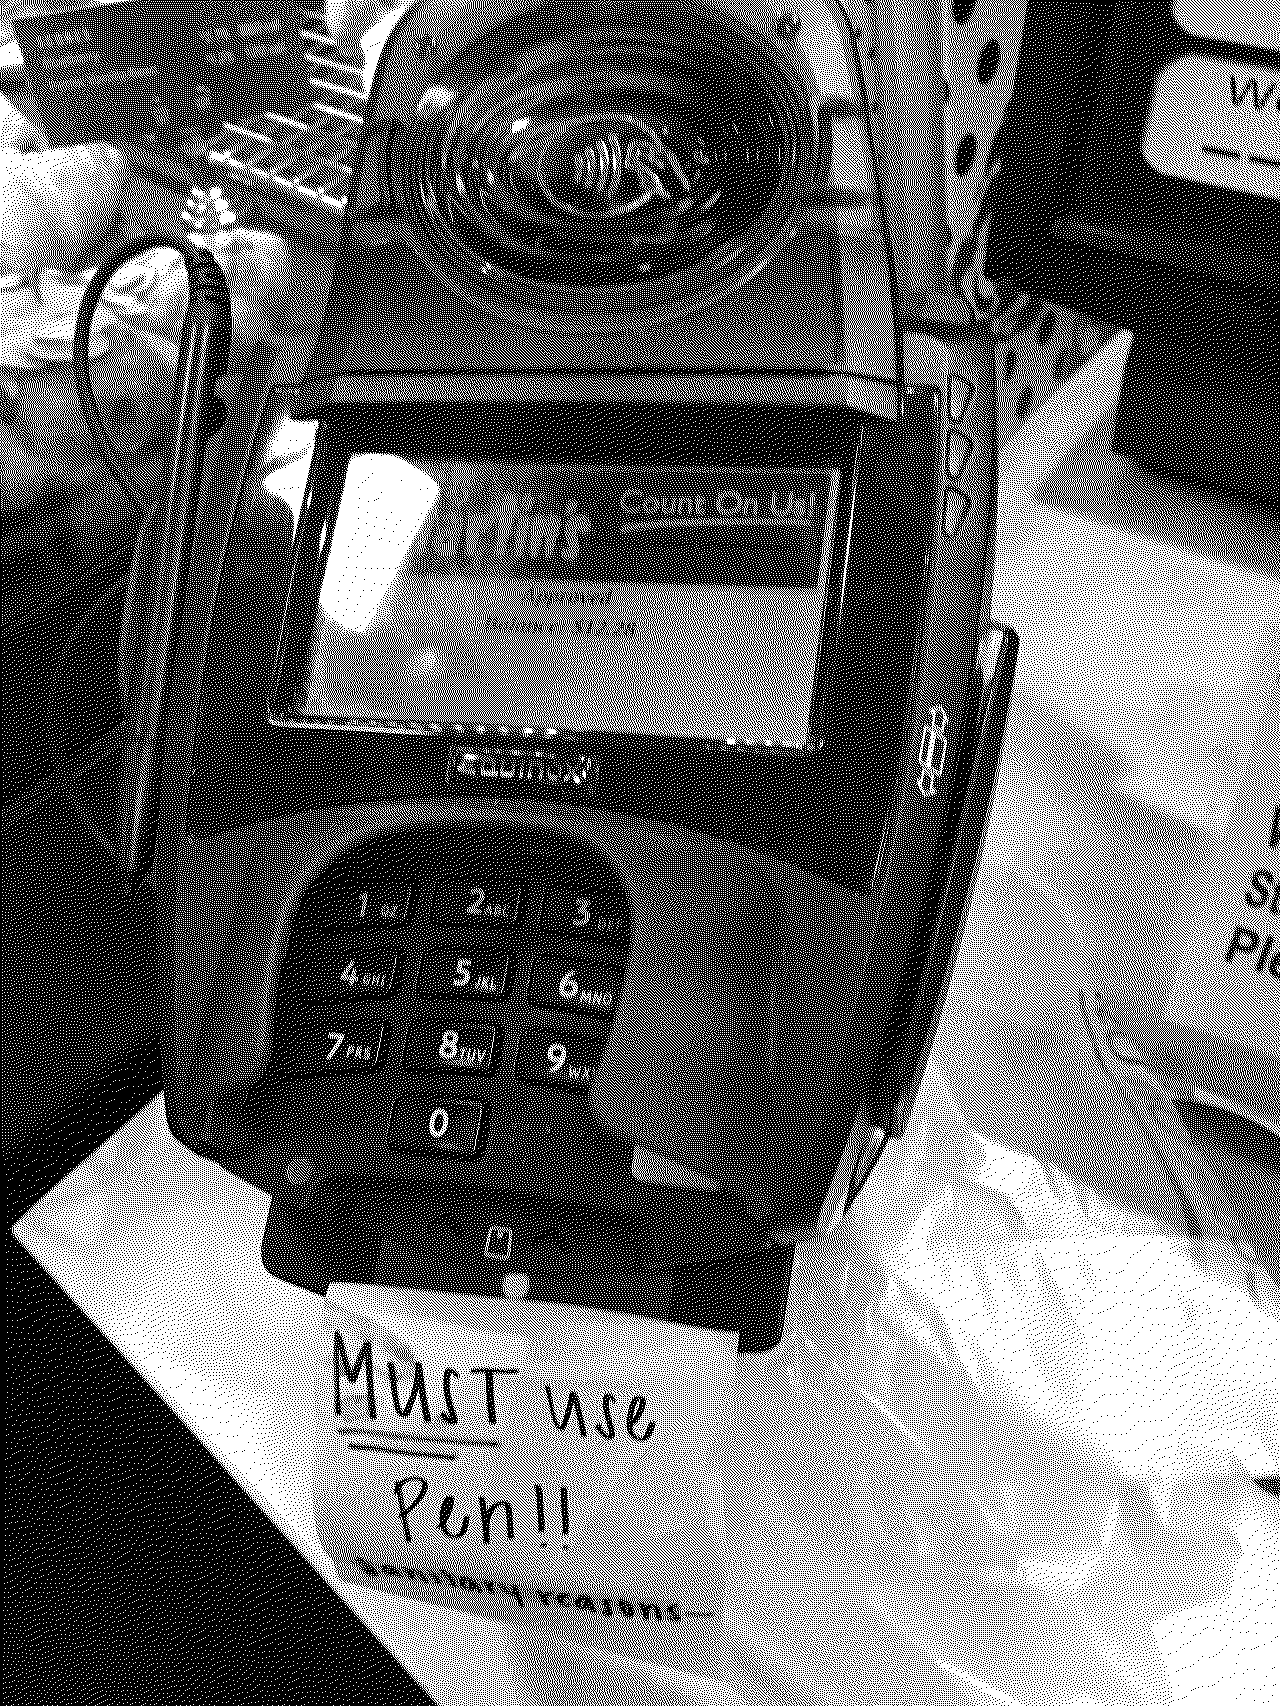 The credit card machine at our local grocery store